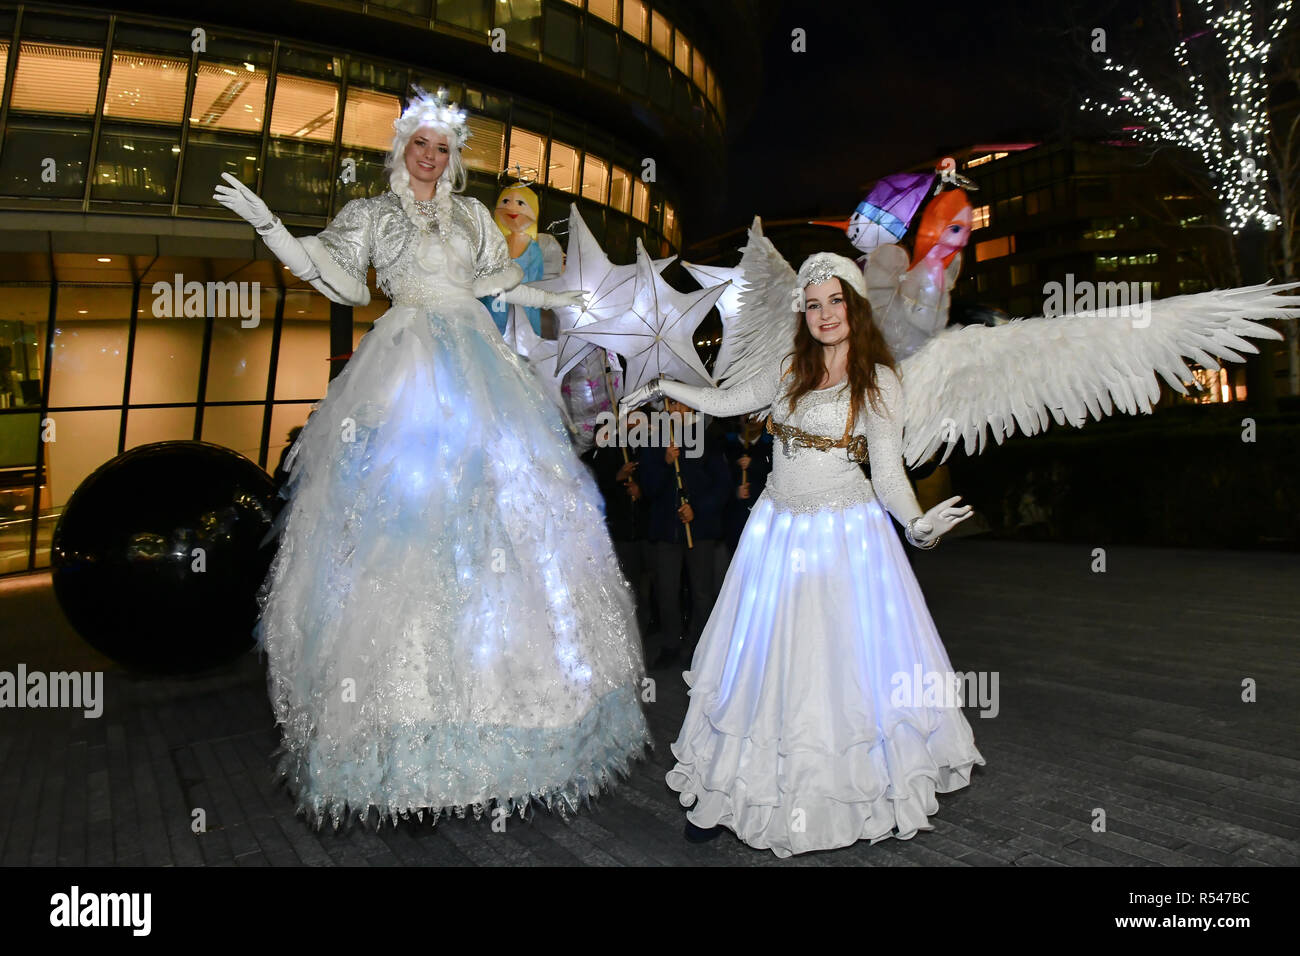 London, UK. 29th Nov 2018. Honourable Councillor Catherine Rose is a Mayor of Southwark join Christmas by the River Launch children from Snowsfields and Tower Bridge Primary Schools of spectacle illuminate procession at London Bridge City and singing jingle bell at Potters Fields Park to Hay Gallery to London Bridge Station on 29 November 2018, London, UK. Credit: Picture Capital/Alamy Live News - Stock Image